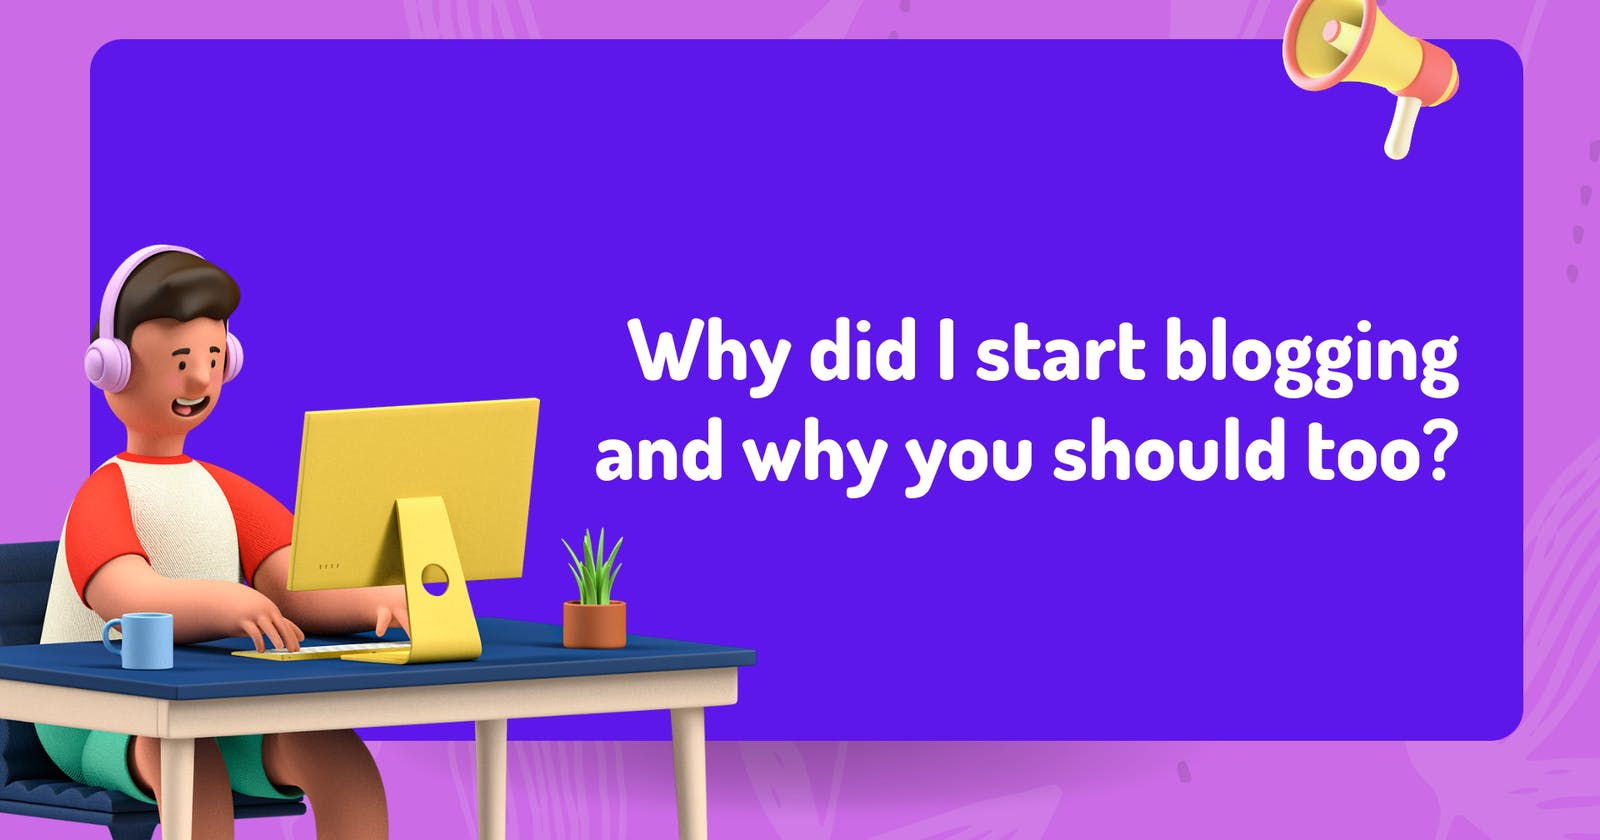 Why did I start blogging and why you should too?